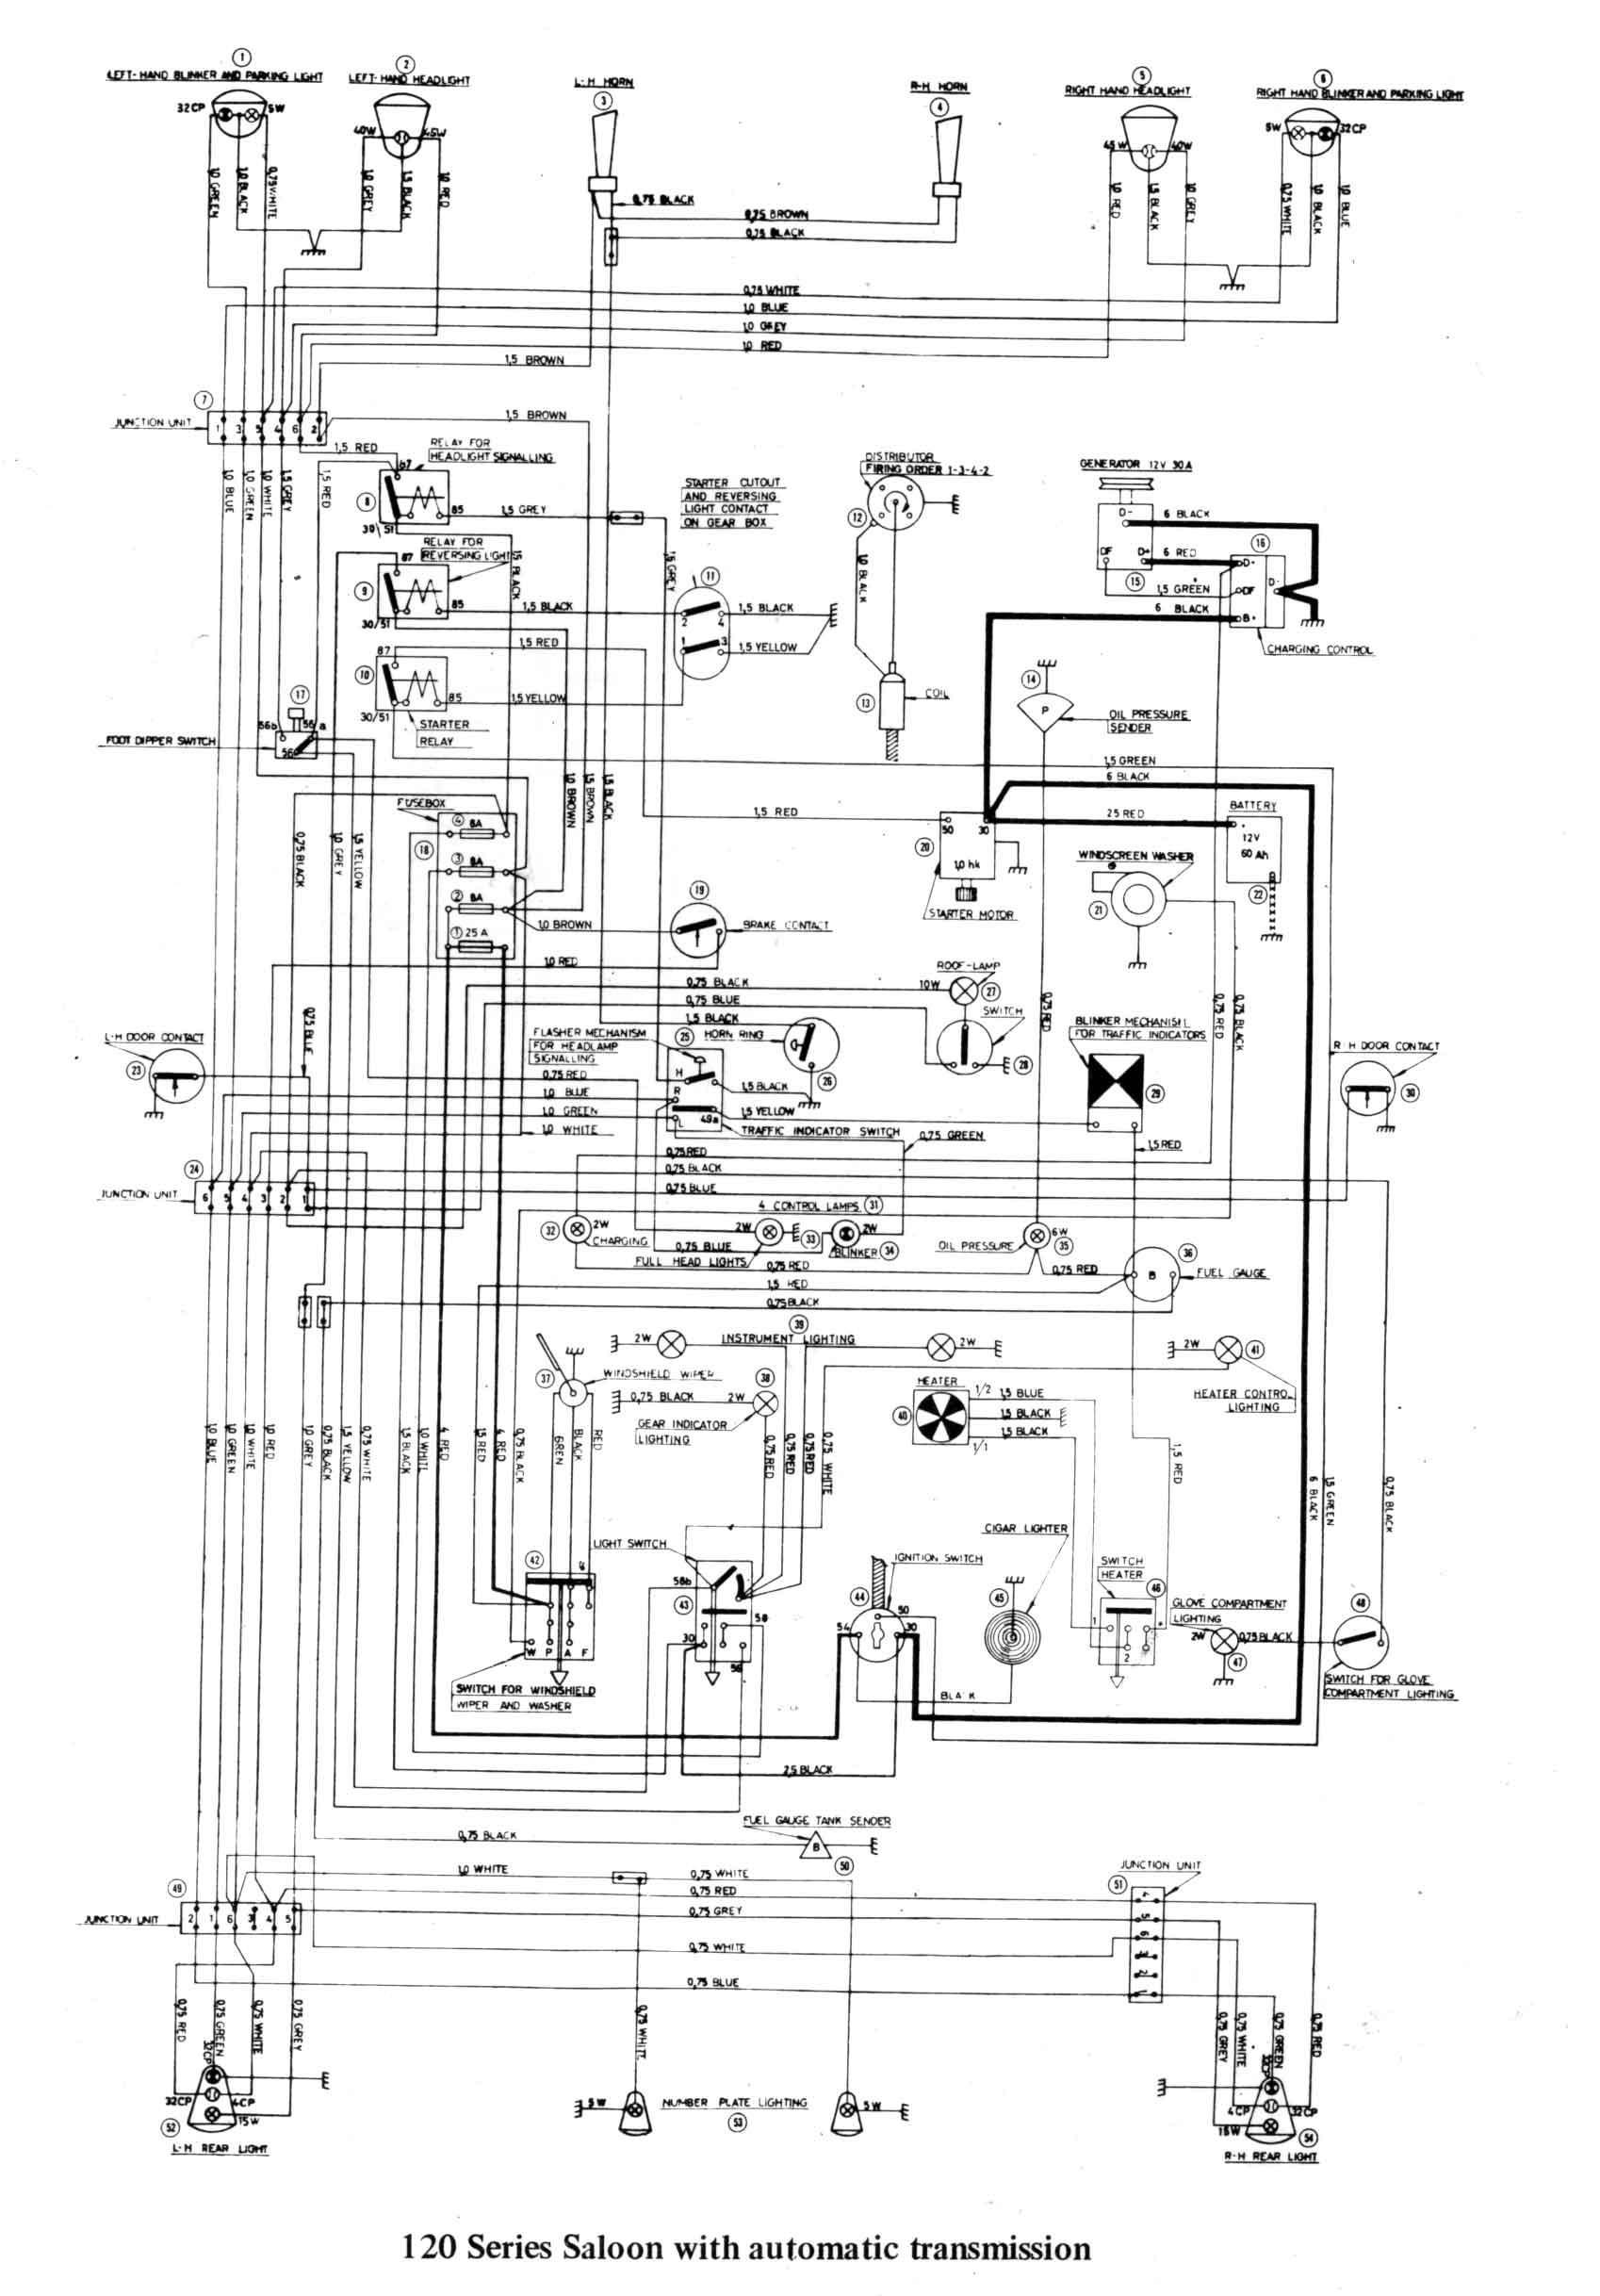 2004 Volvo S40 Engine Diagram Interesting Info About Volvo Raleigh with Cool Gallery Of 2004 Volvo S40 Engine Diagram